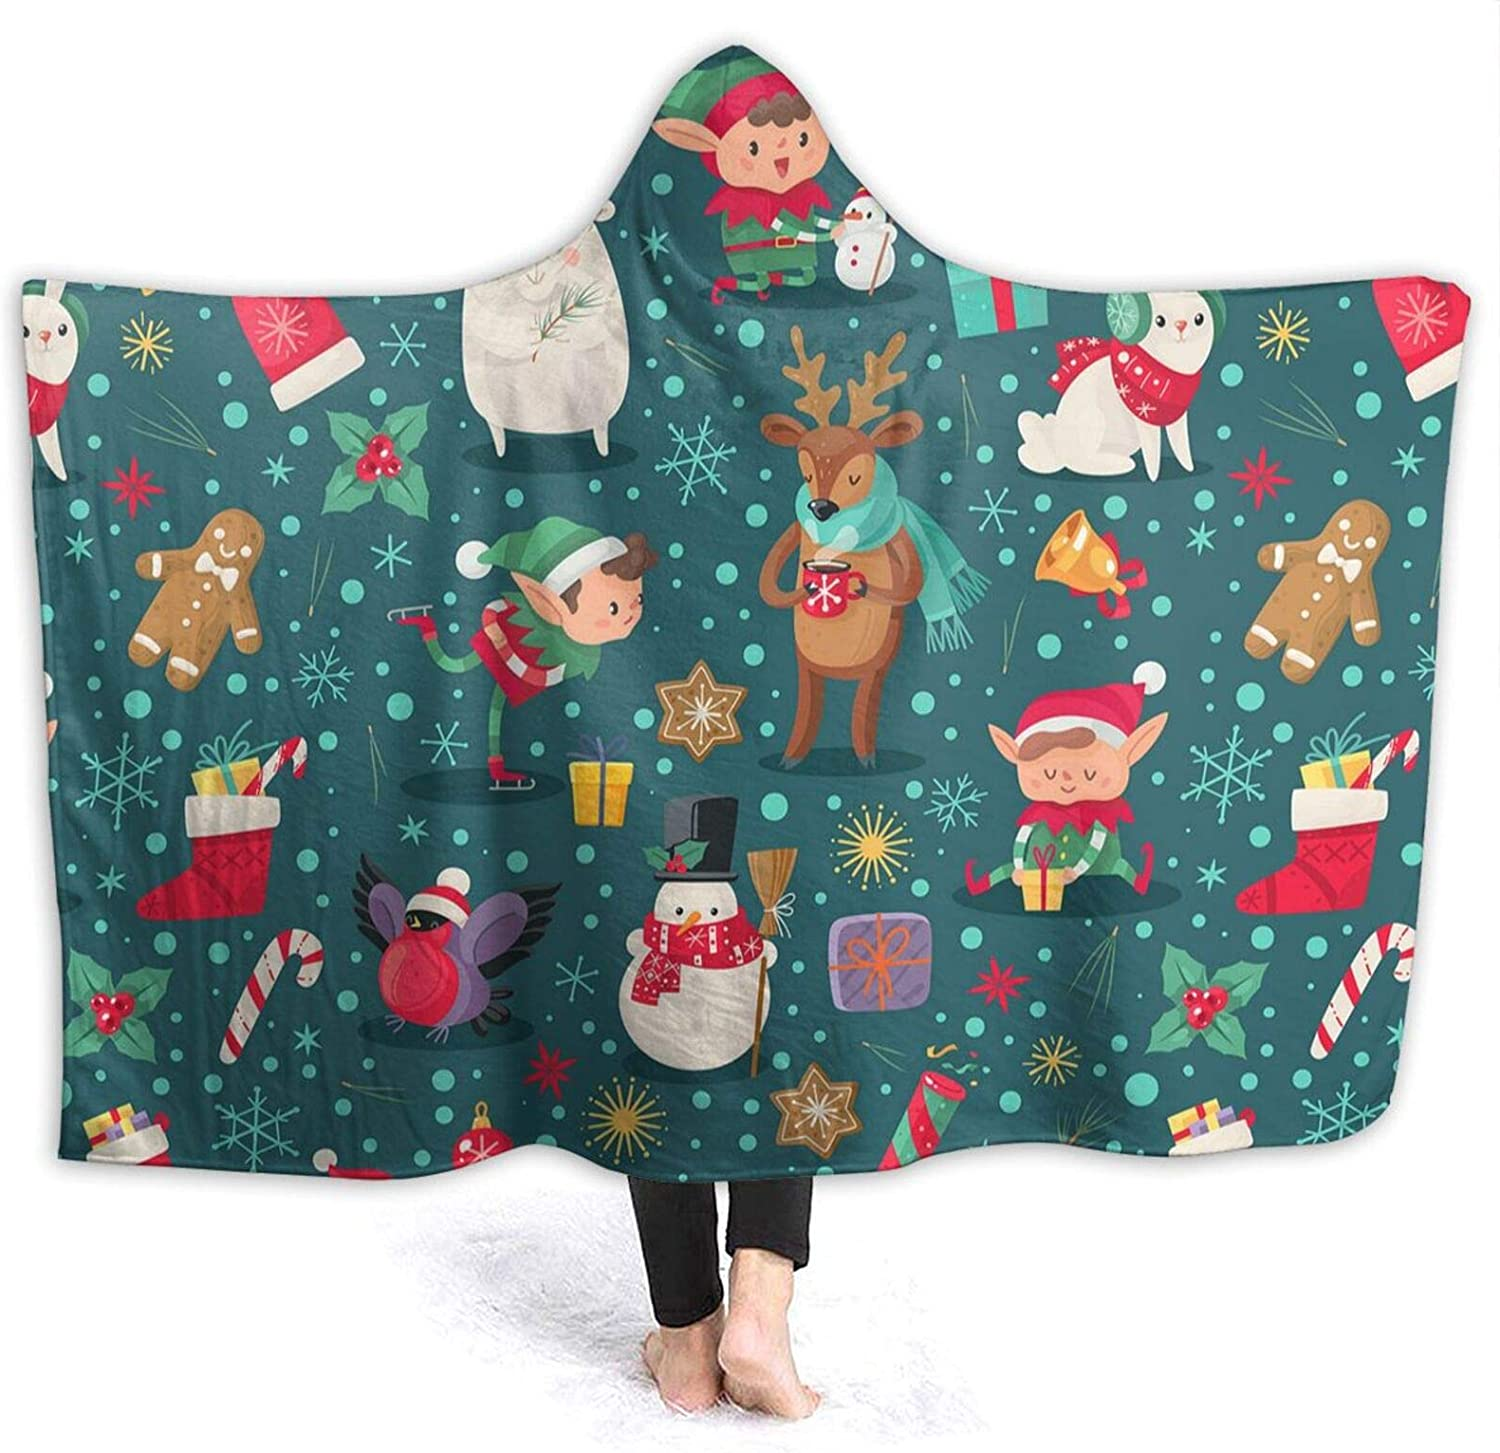 Ranking TOP19 Christmas Characters Hooded Blanket Thr Air Direct sale of manufacturer Conditioning